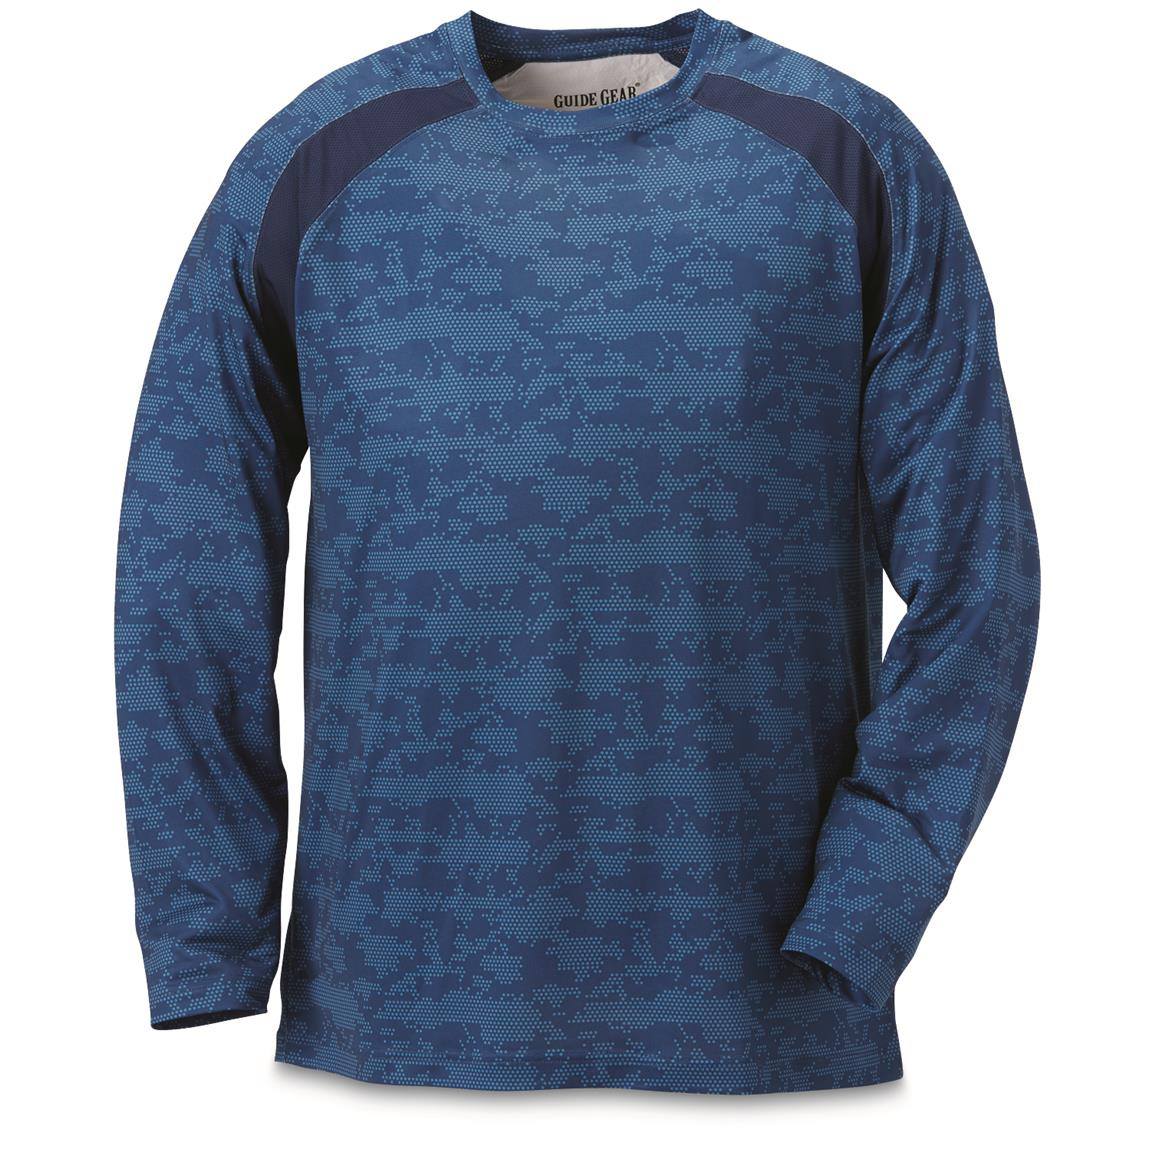 Guide Gear Men's Performance Fishing Long Sleeve T-Shirt, Blue Hex